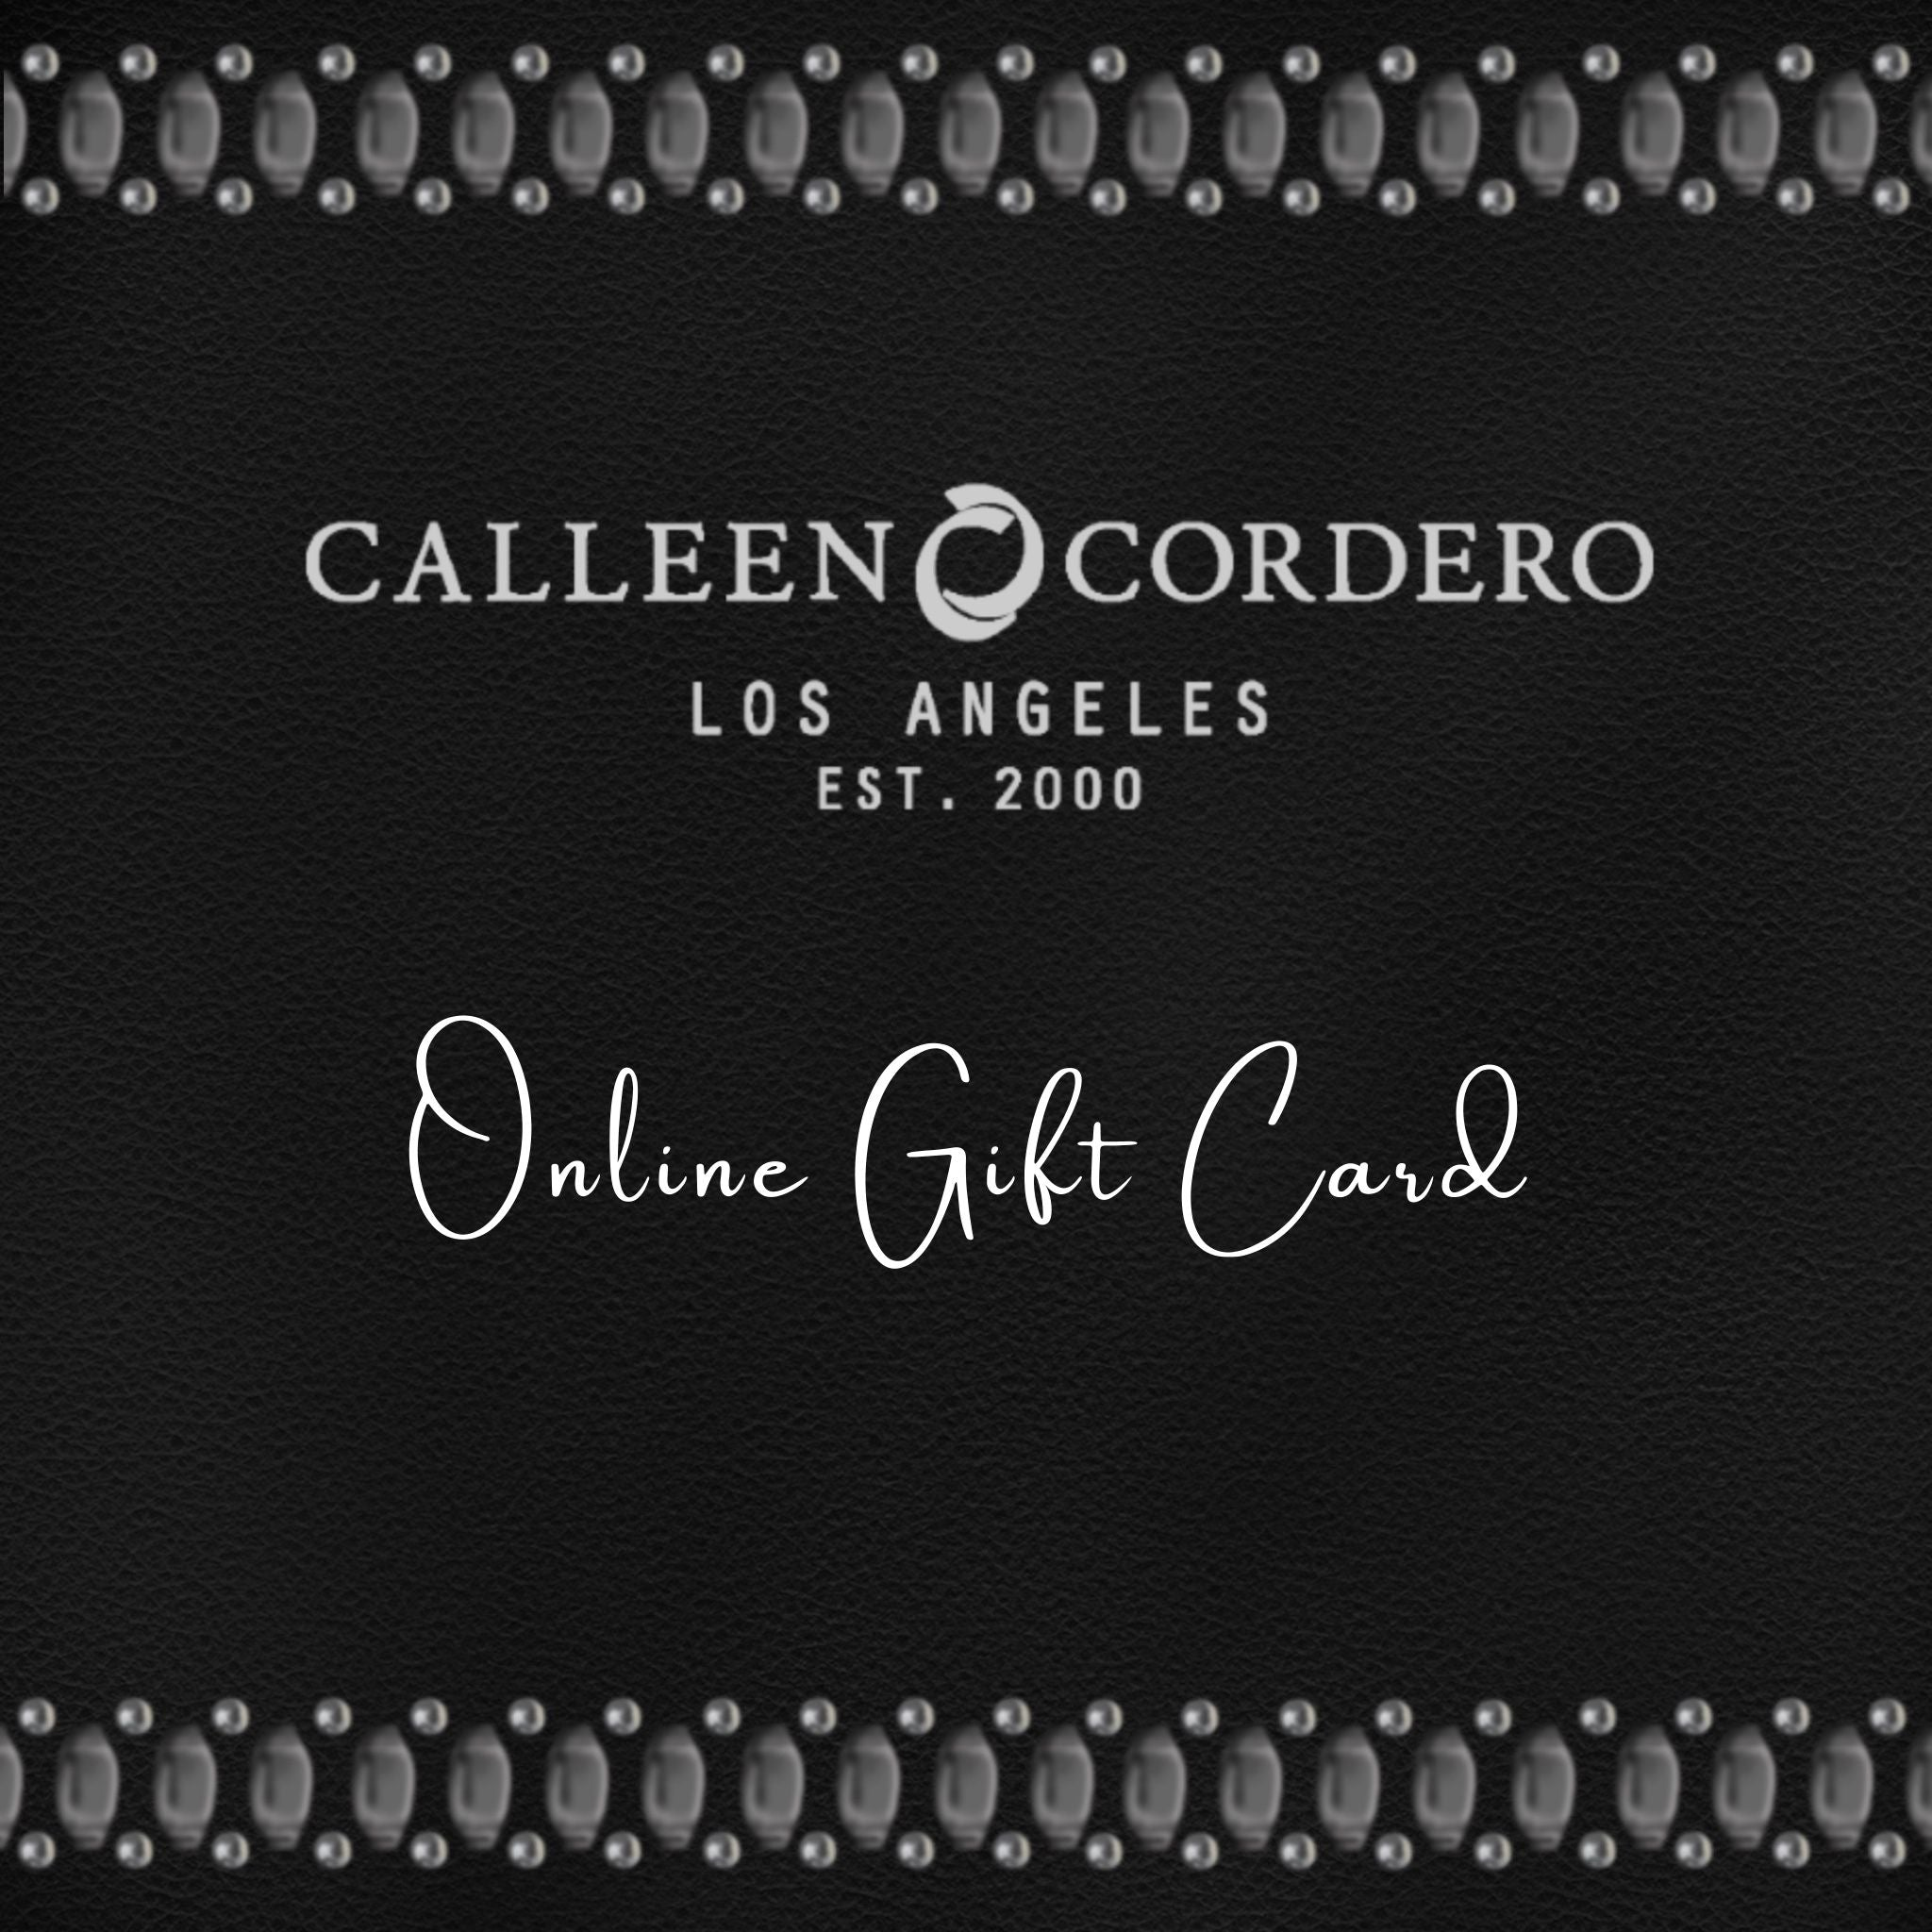 Calleen Cordero Official Site | Los Angeles